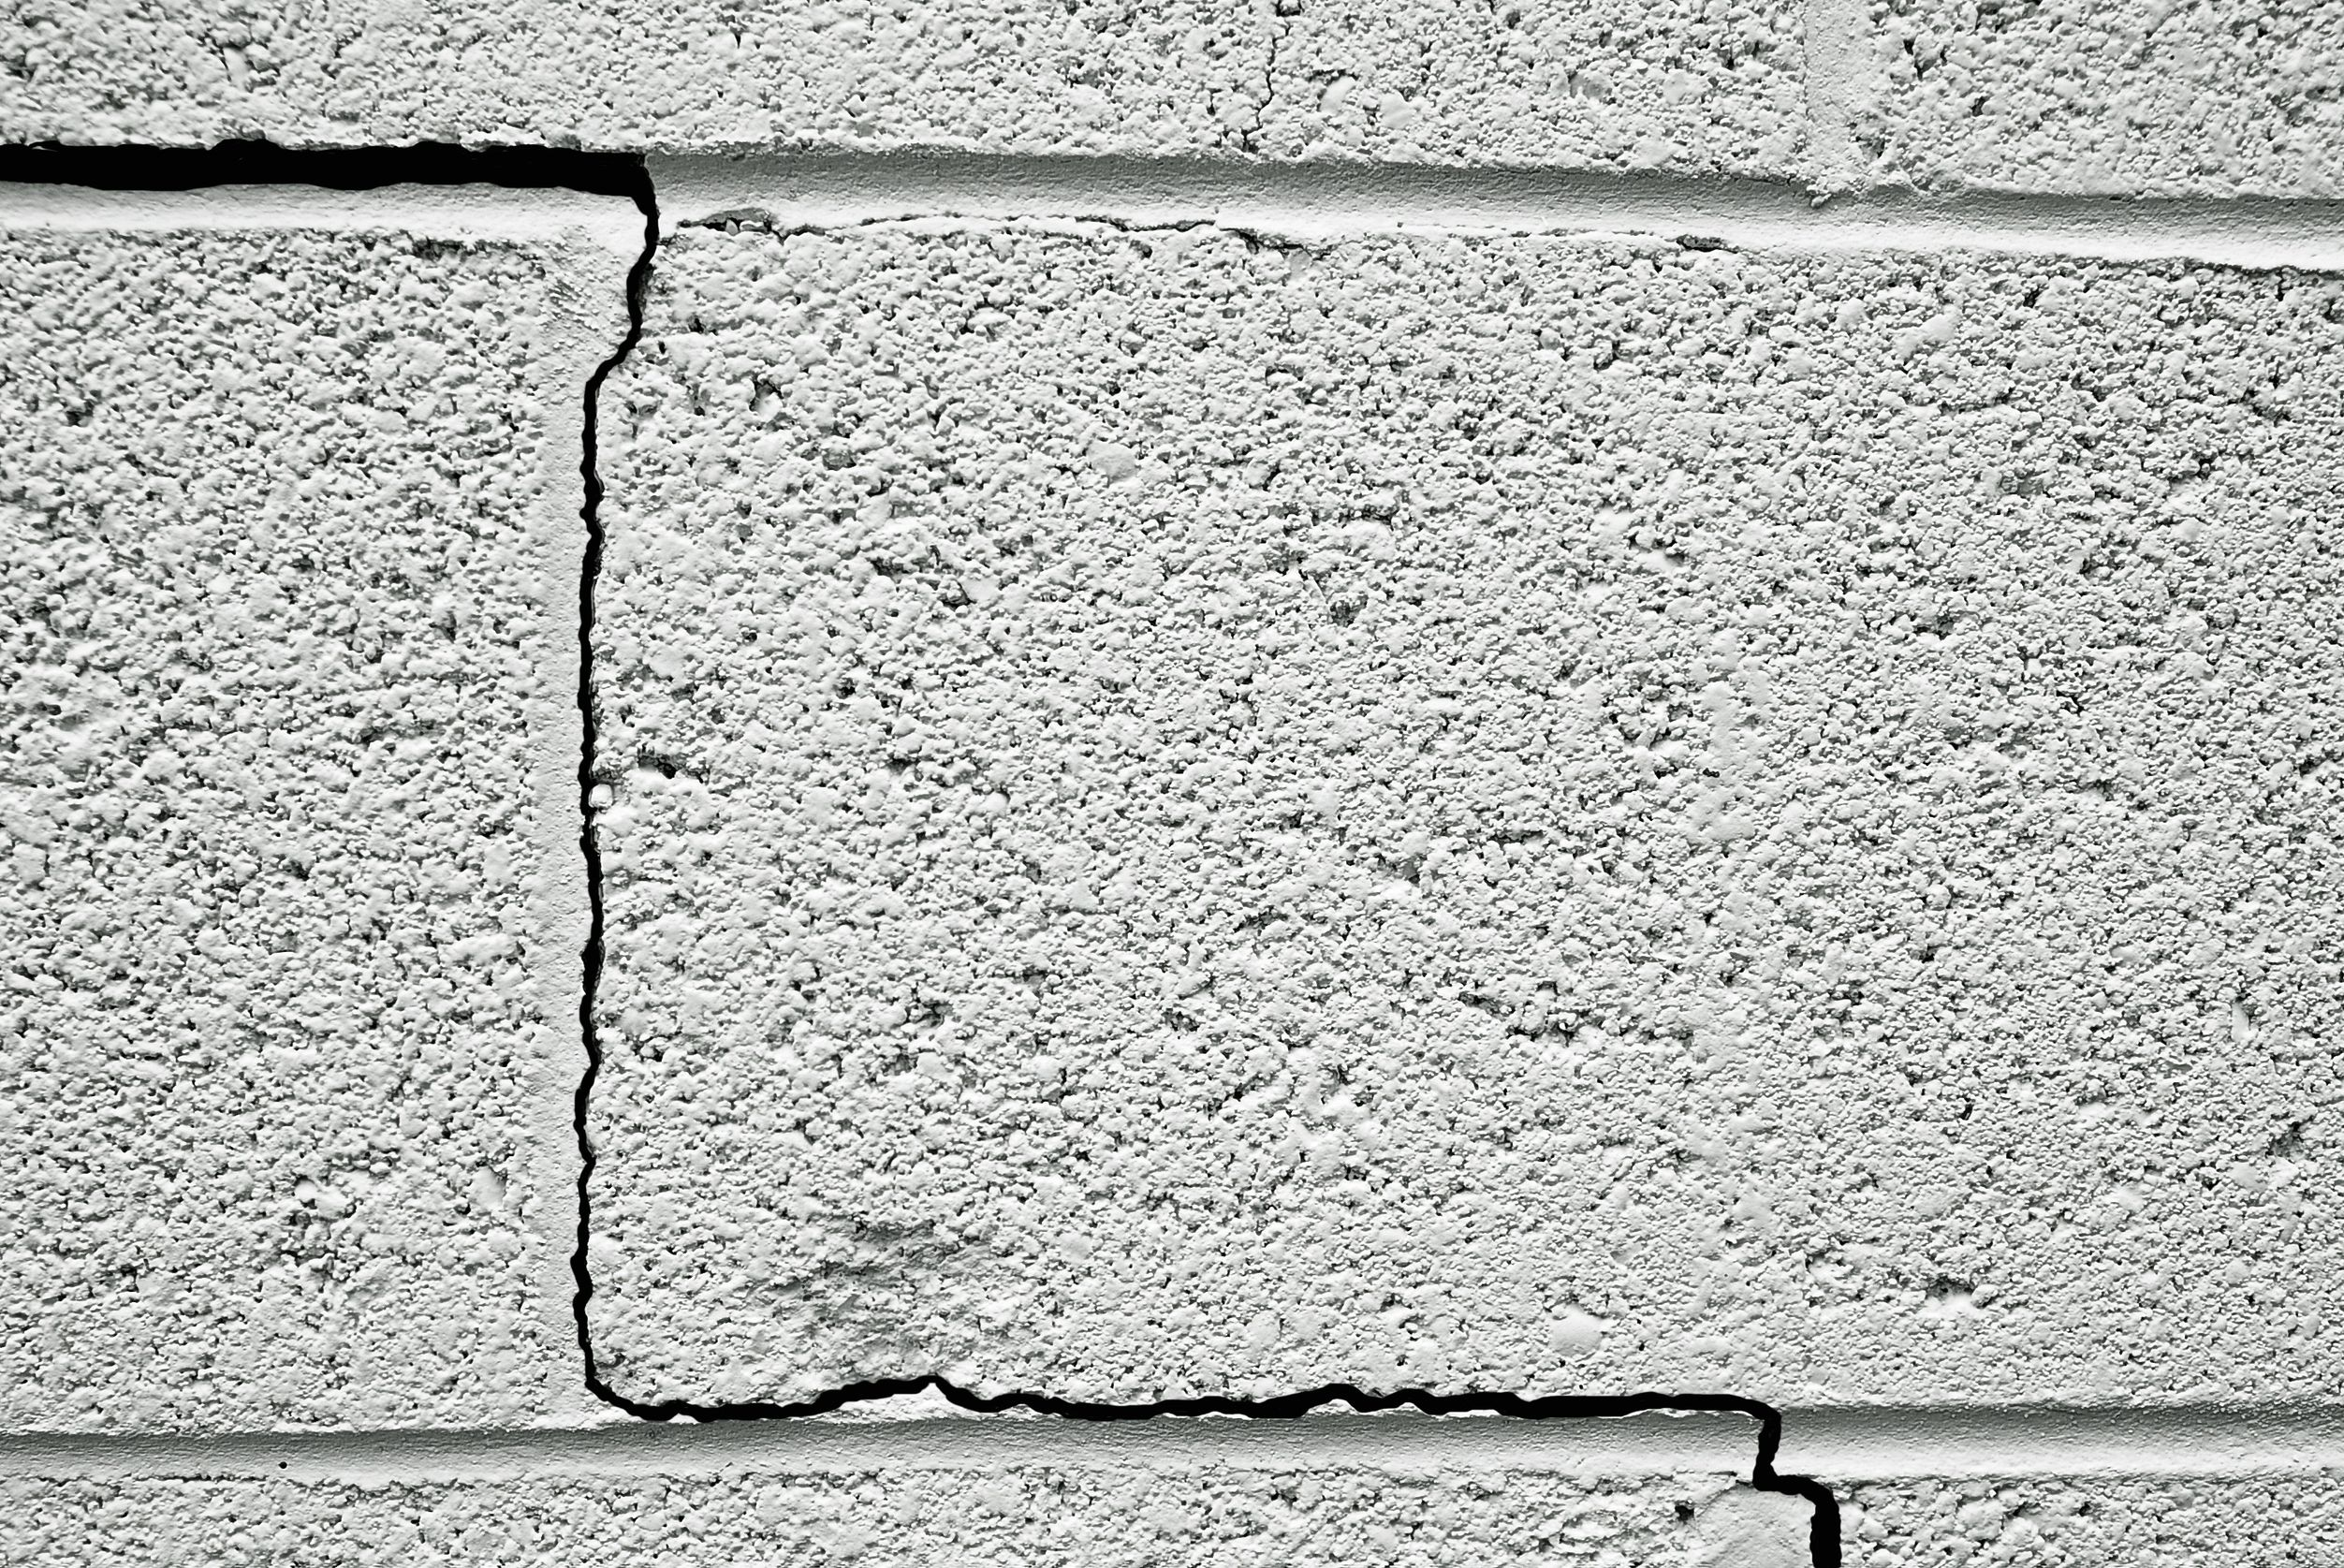 14034045 - crack in a concrete building foundation